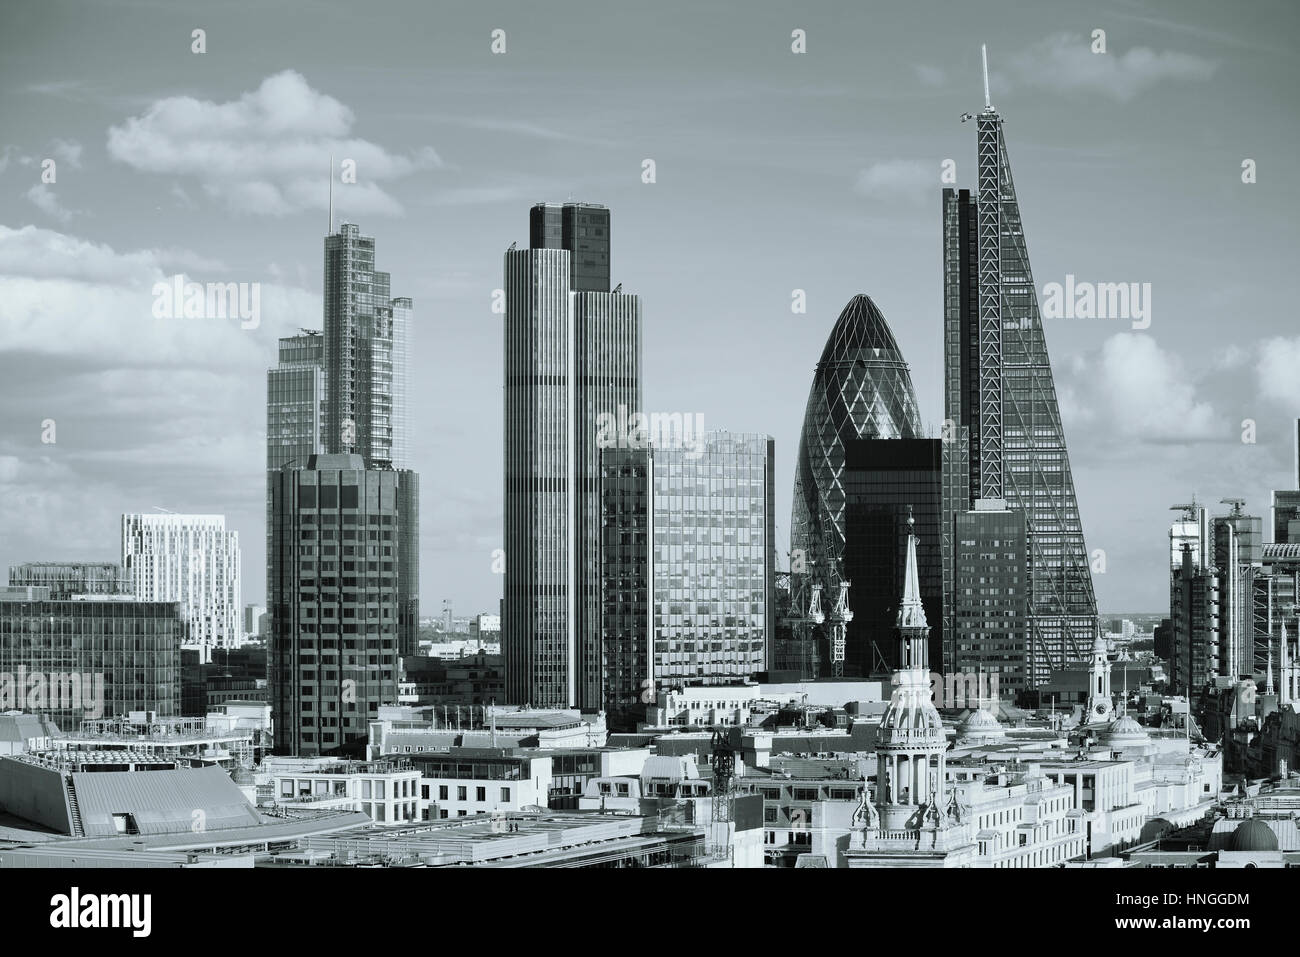 vue sur les toits de la ville de londres avec des architectures urbaines banque d 39 images photo. Black Bedroom Furniture Sets. Home Design Ideas